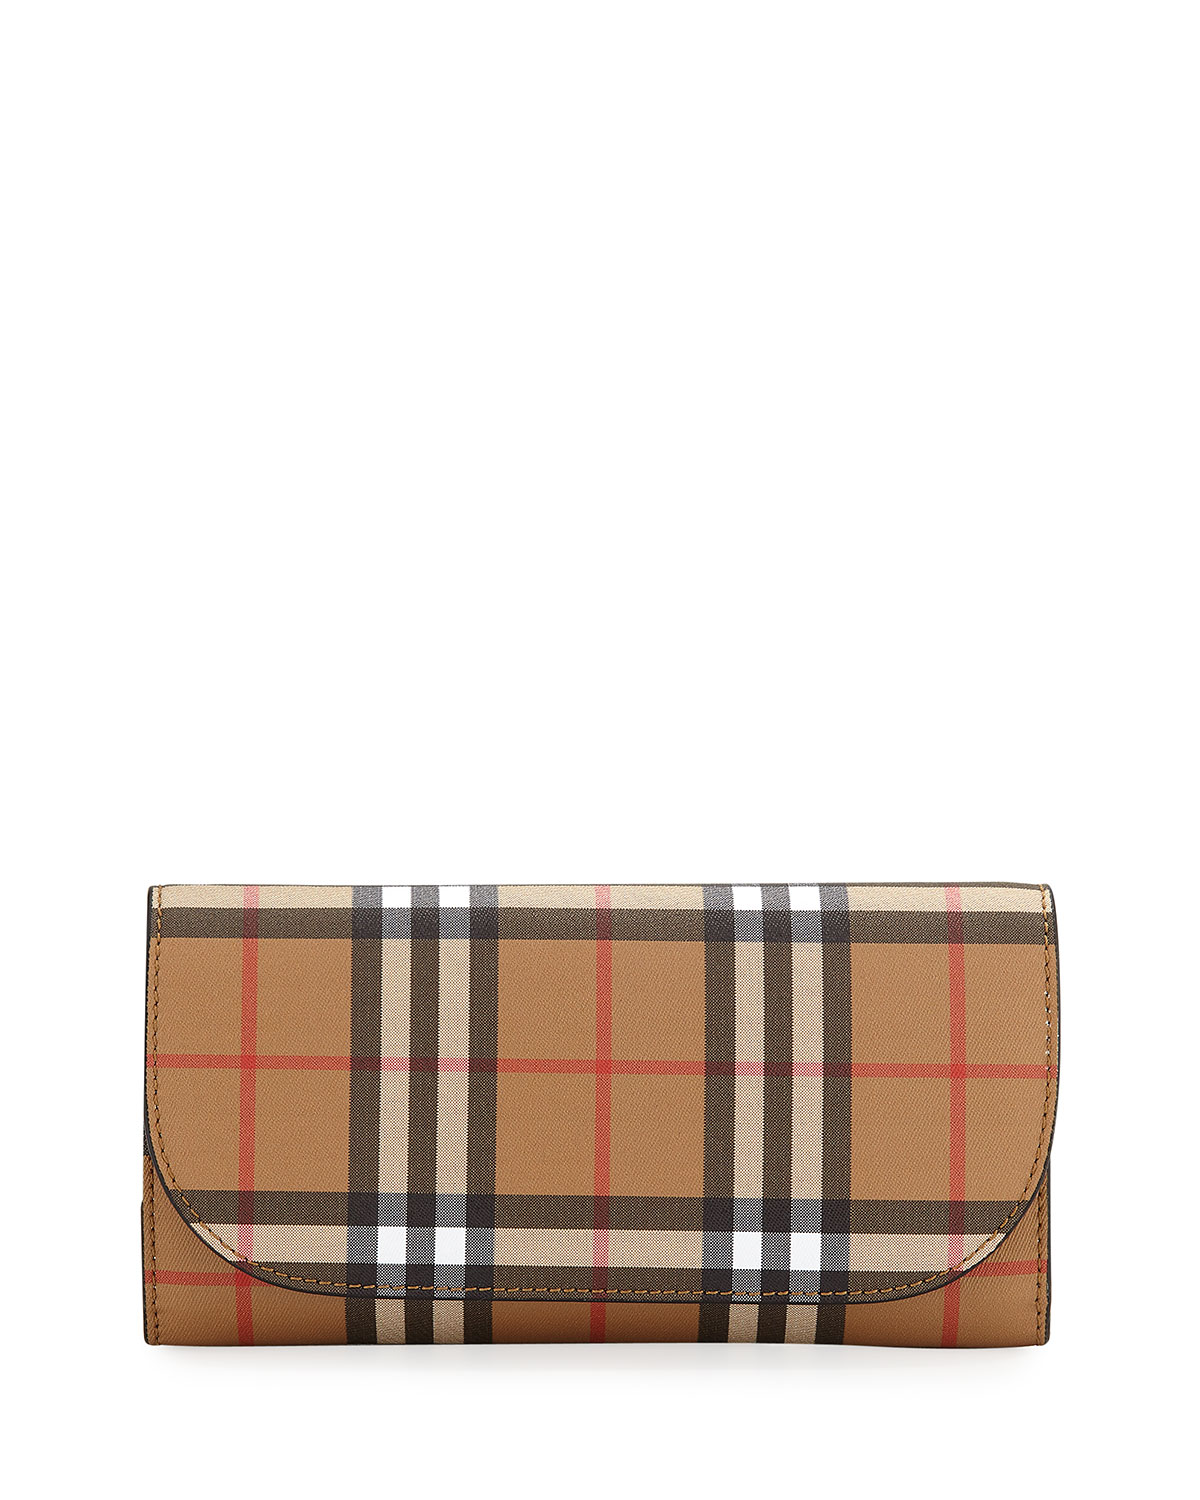 7899c4497248 Burberry Vintage Check Crossbody Wallet on Chain